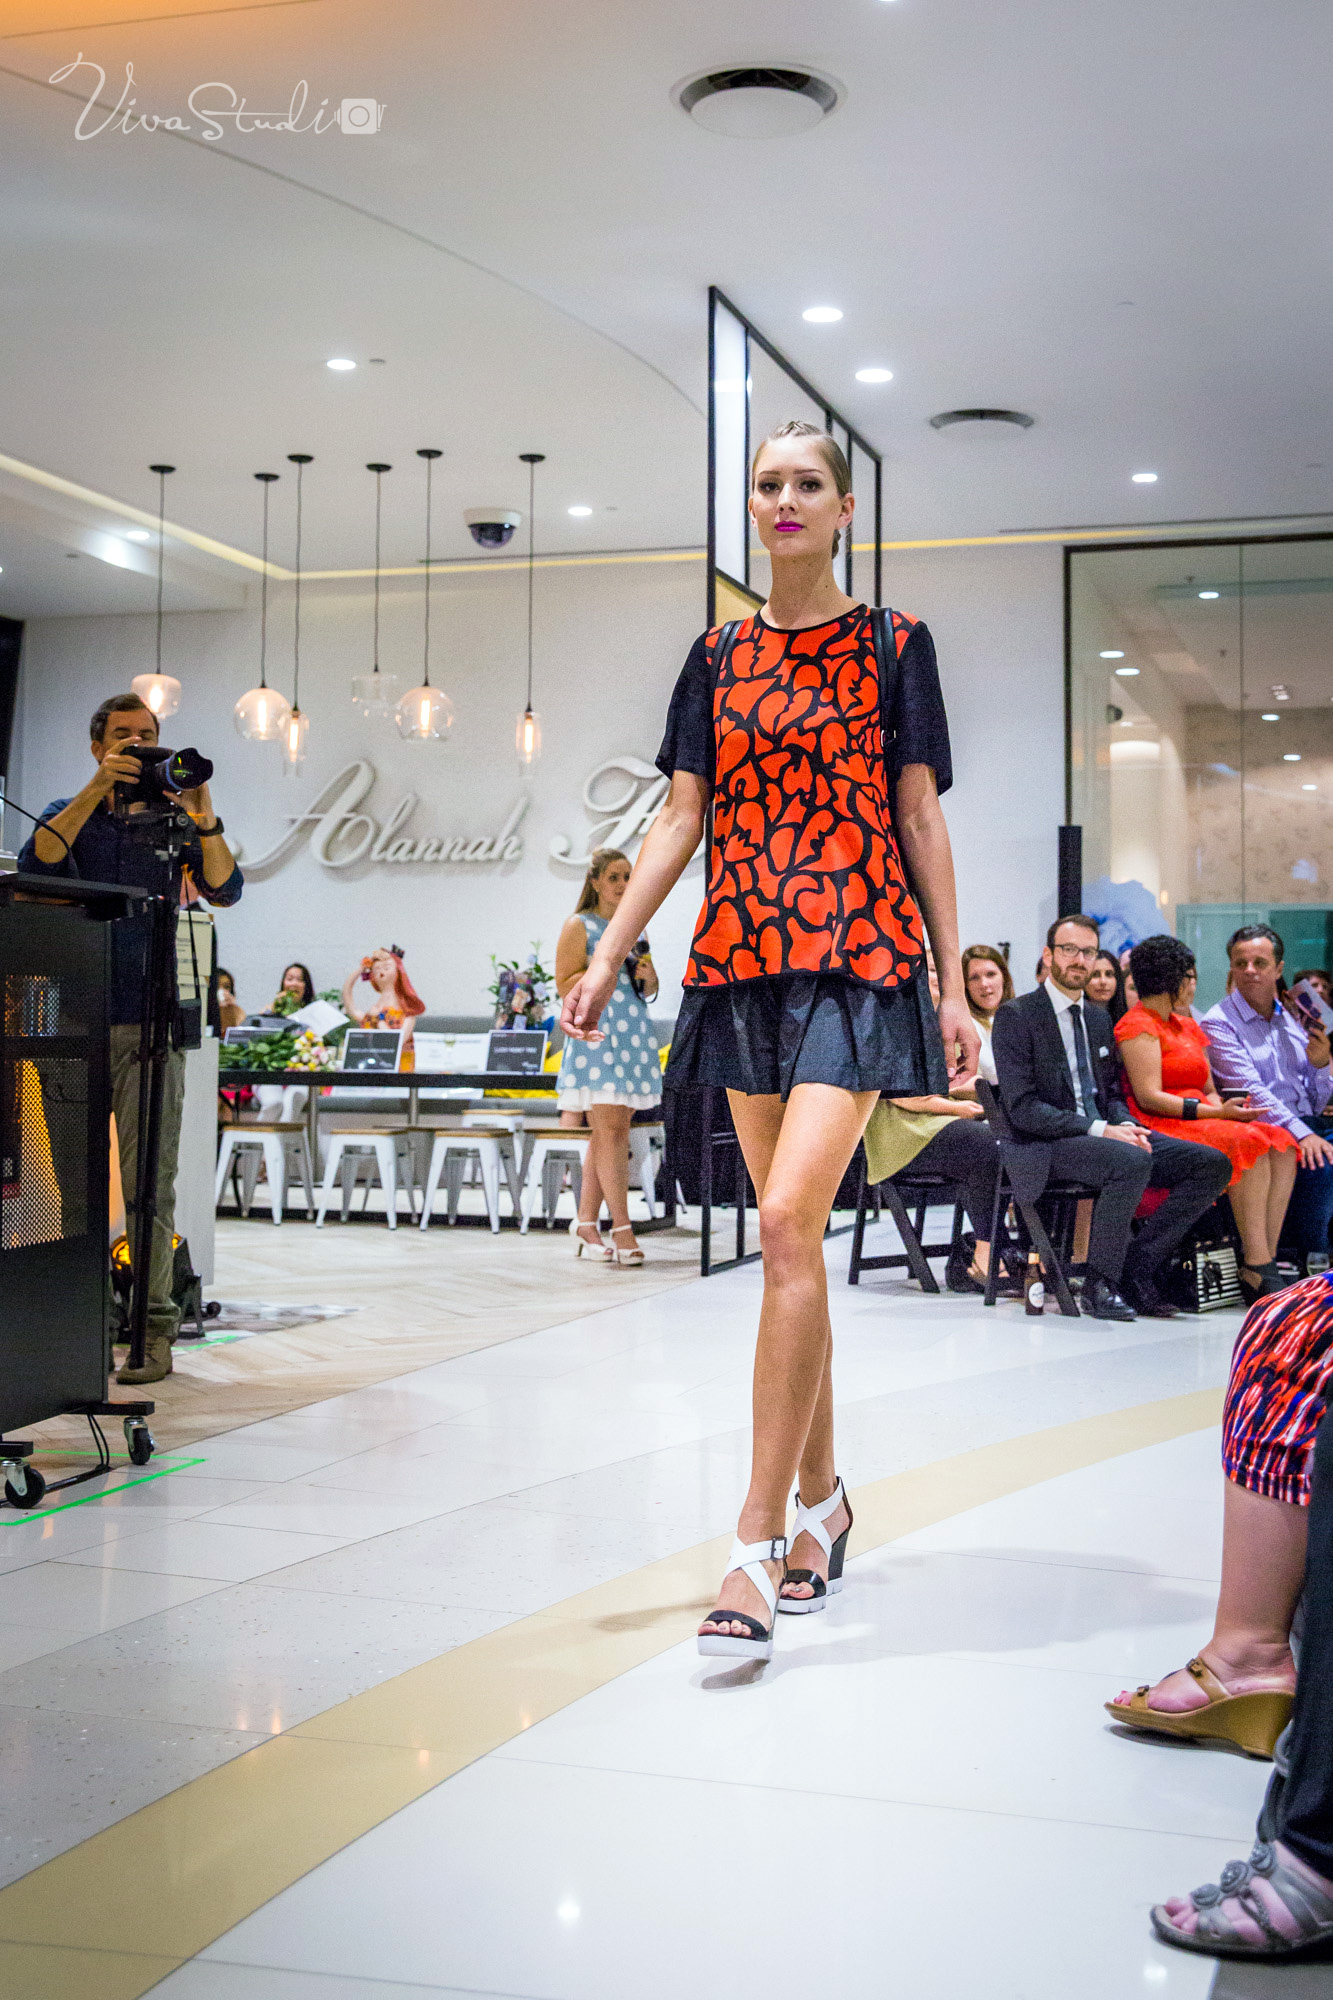 VivaStudio_Design_Photograpphy_Brisbane_Event_Fashionable_20151105_0222